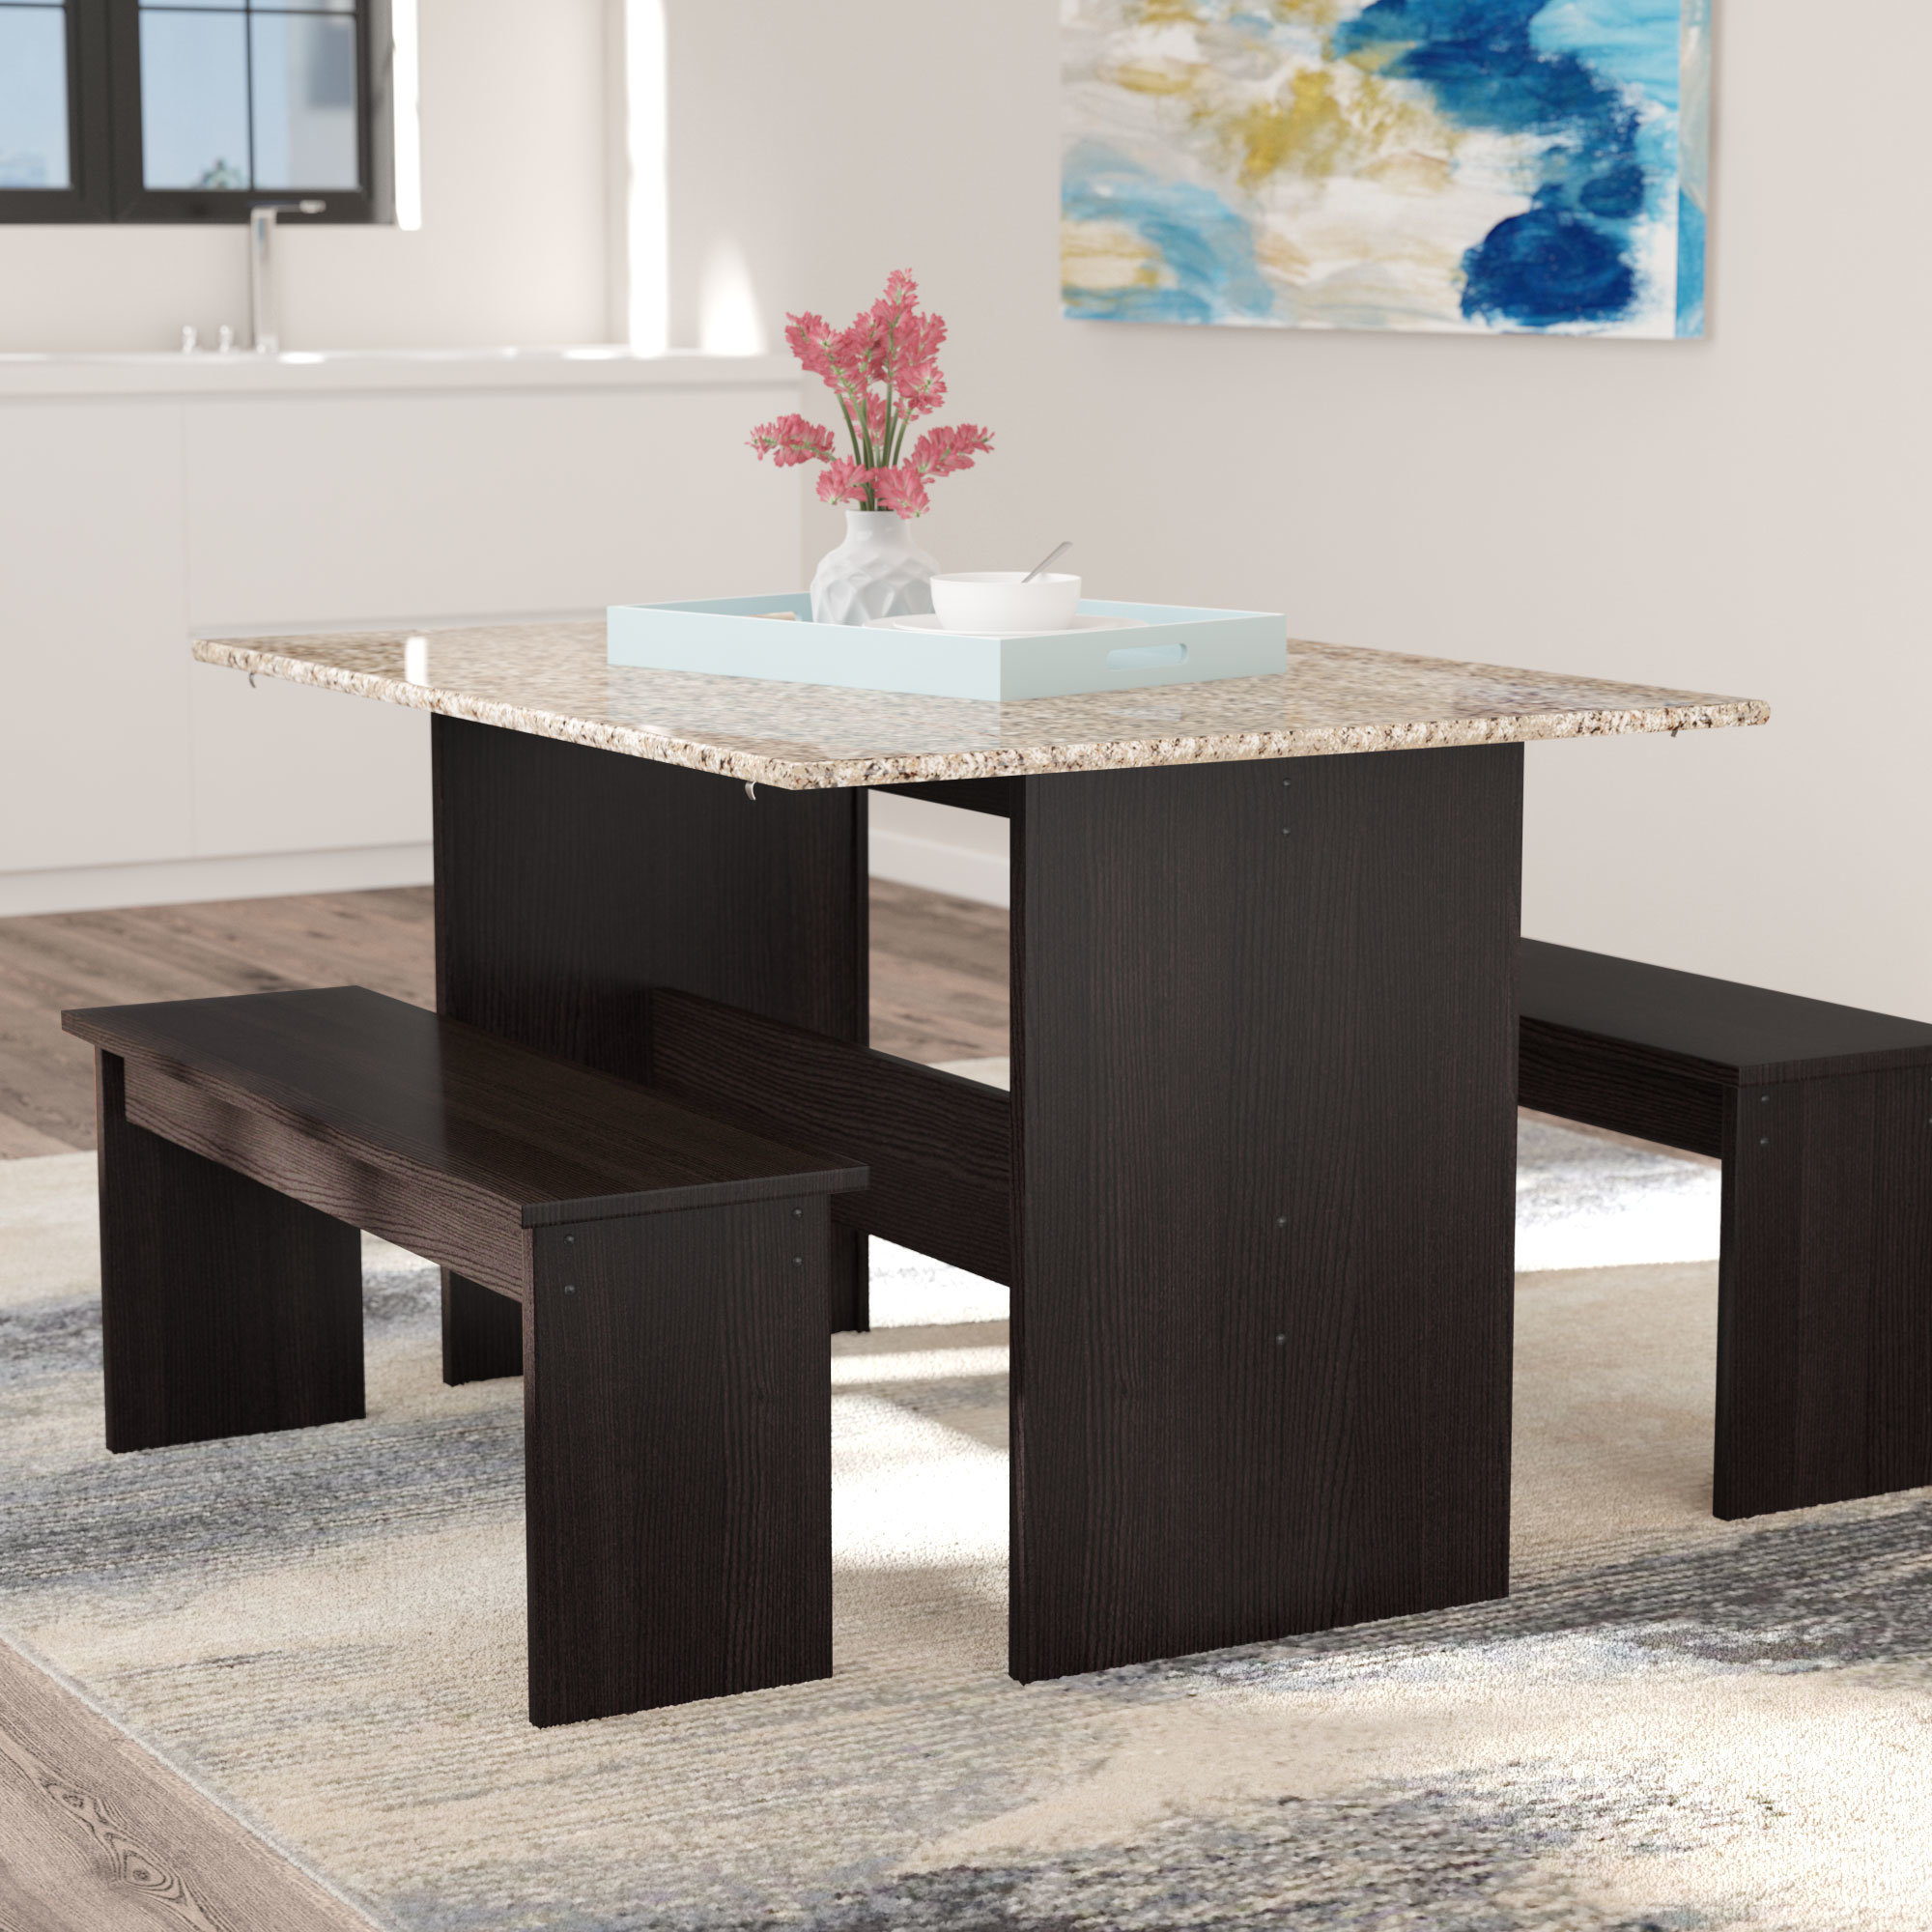 Widely Used Frida 3 Piece Dining Table Sets With Regard To Ryker 3 Piece Dining Set (View 6 of 20)